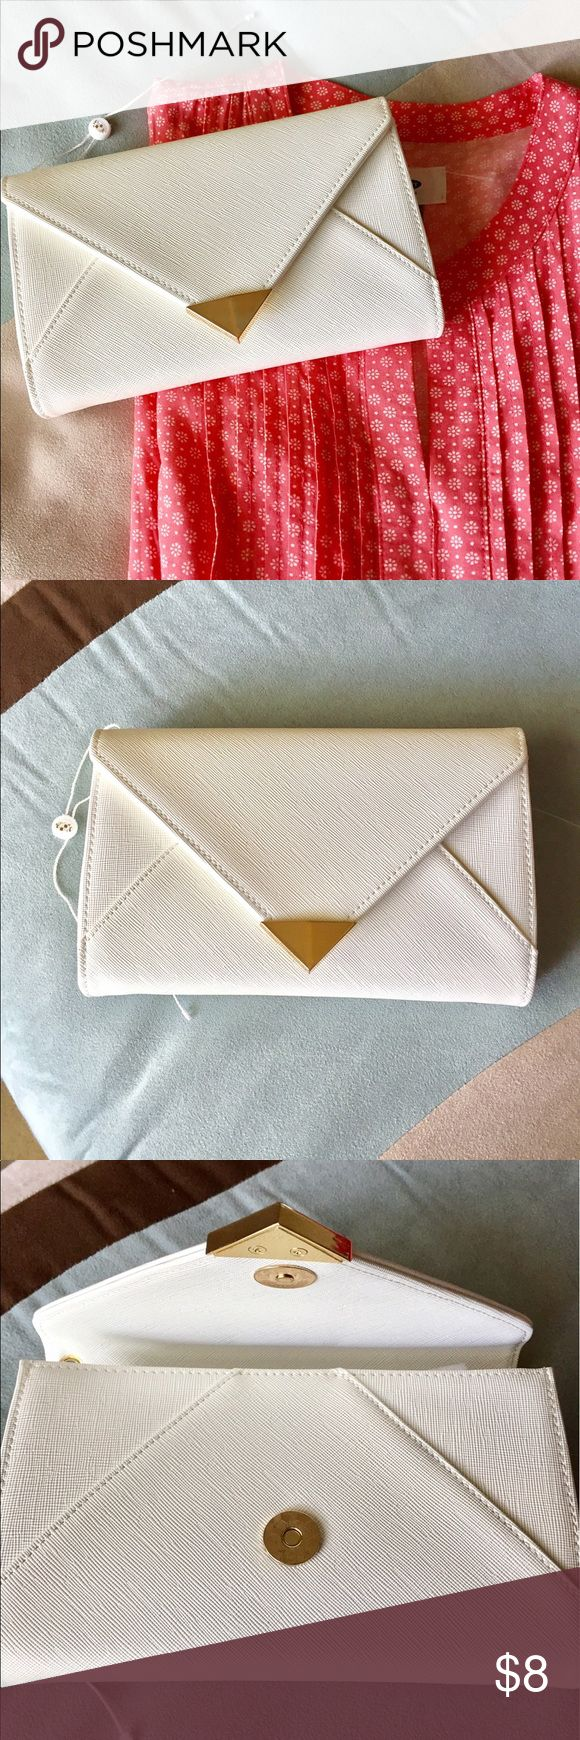 NWOT white clutch/wristlet NEW super cute clutch/wristlet, white faux leather, goes with every outfit, excellent for summer!! Various compartments. Offers welcome!! Urban Bags Clutches & Wristlets